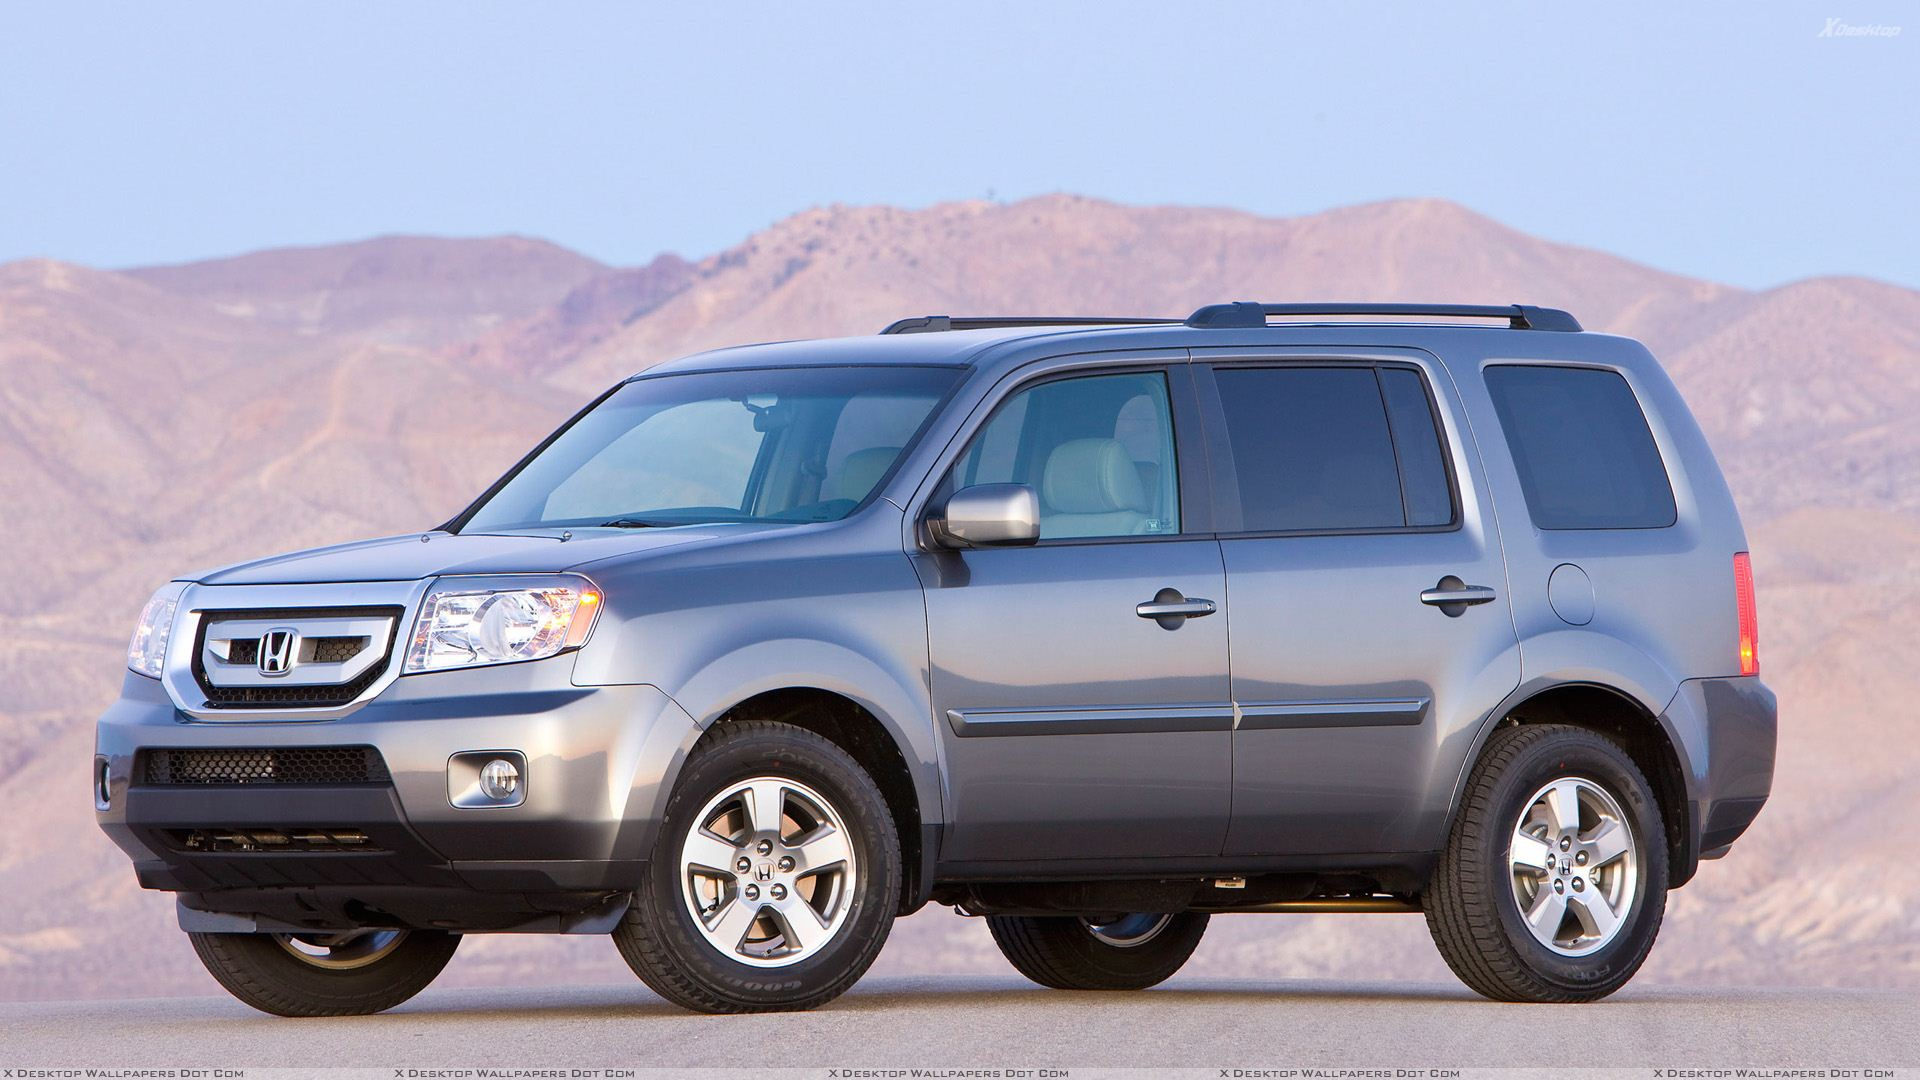 2010 honda pilot in grey near mountains wallpaper